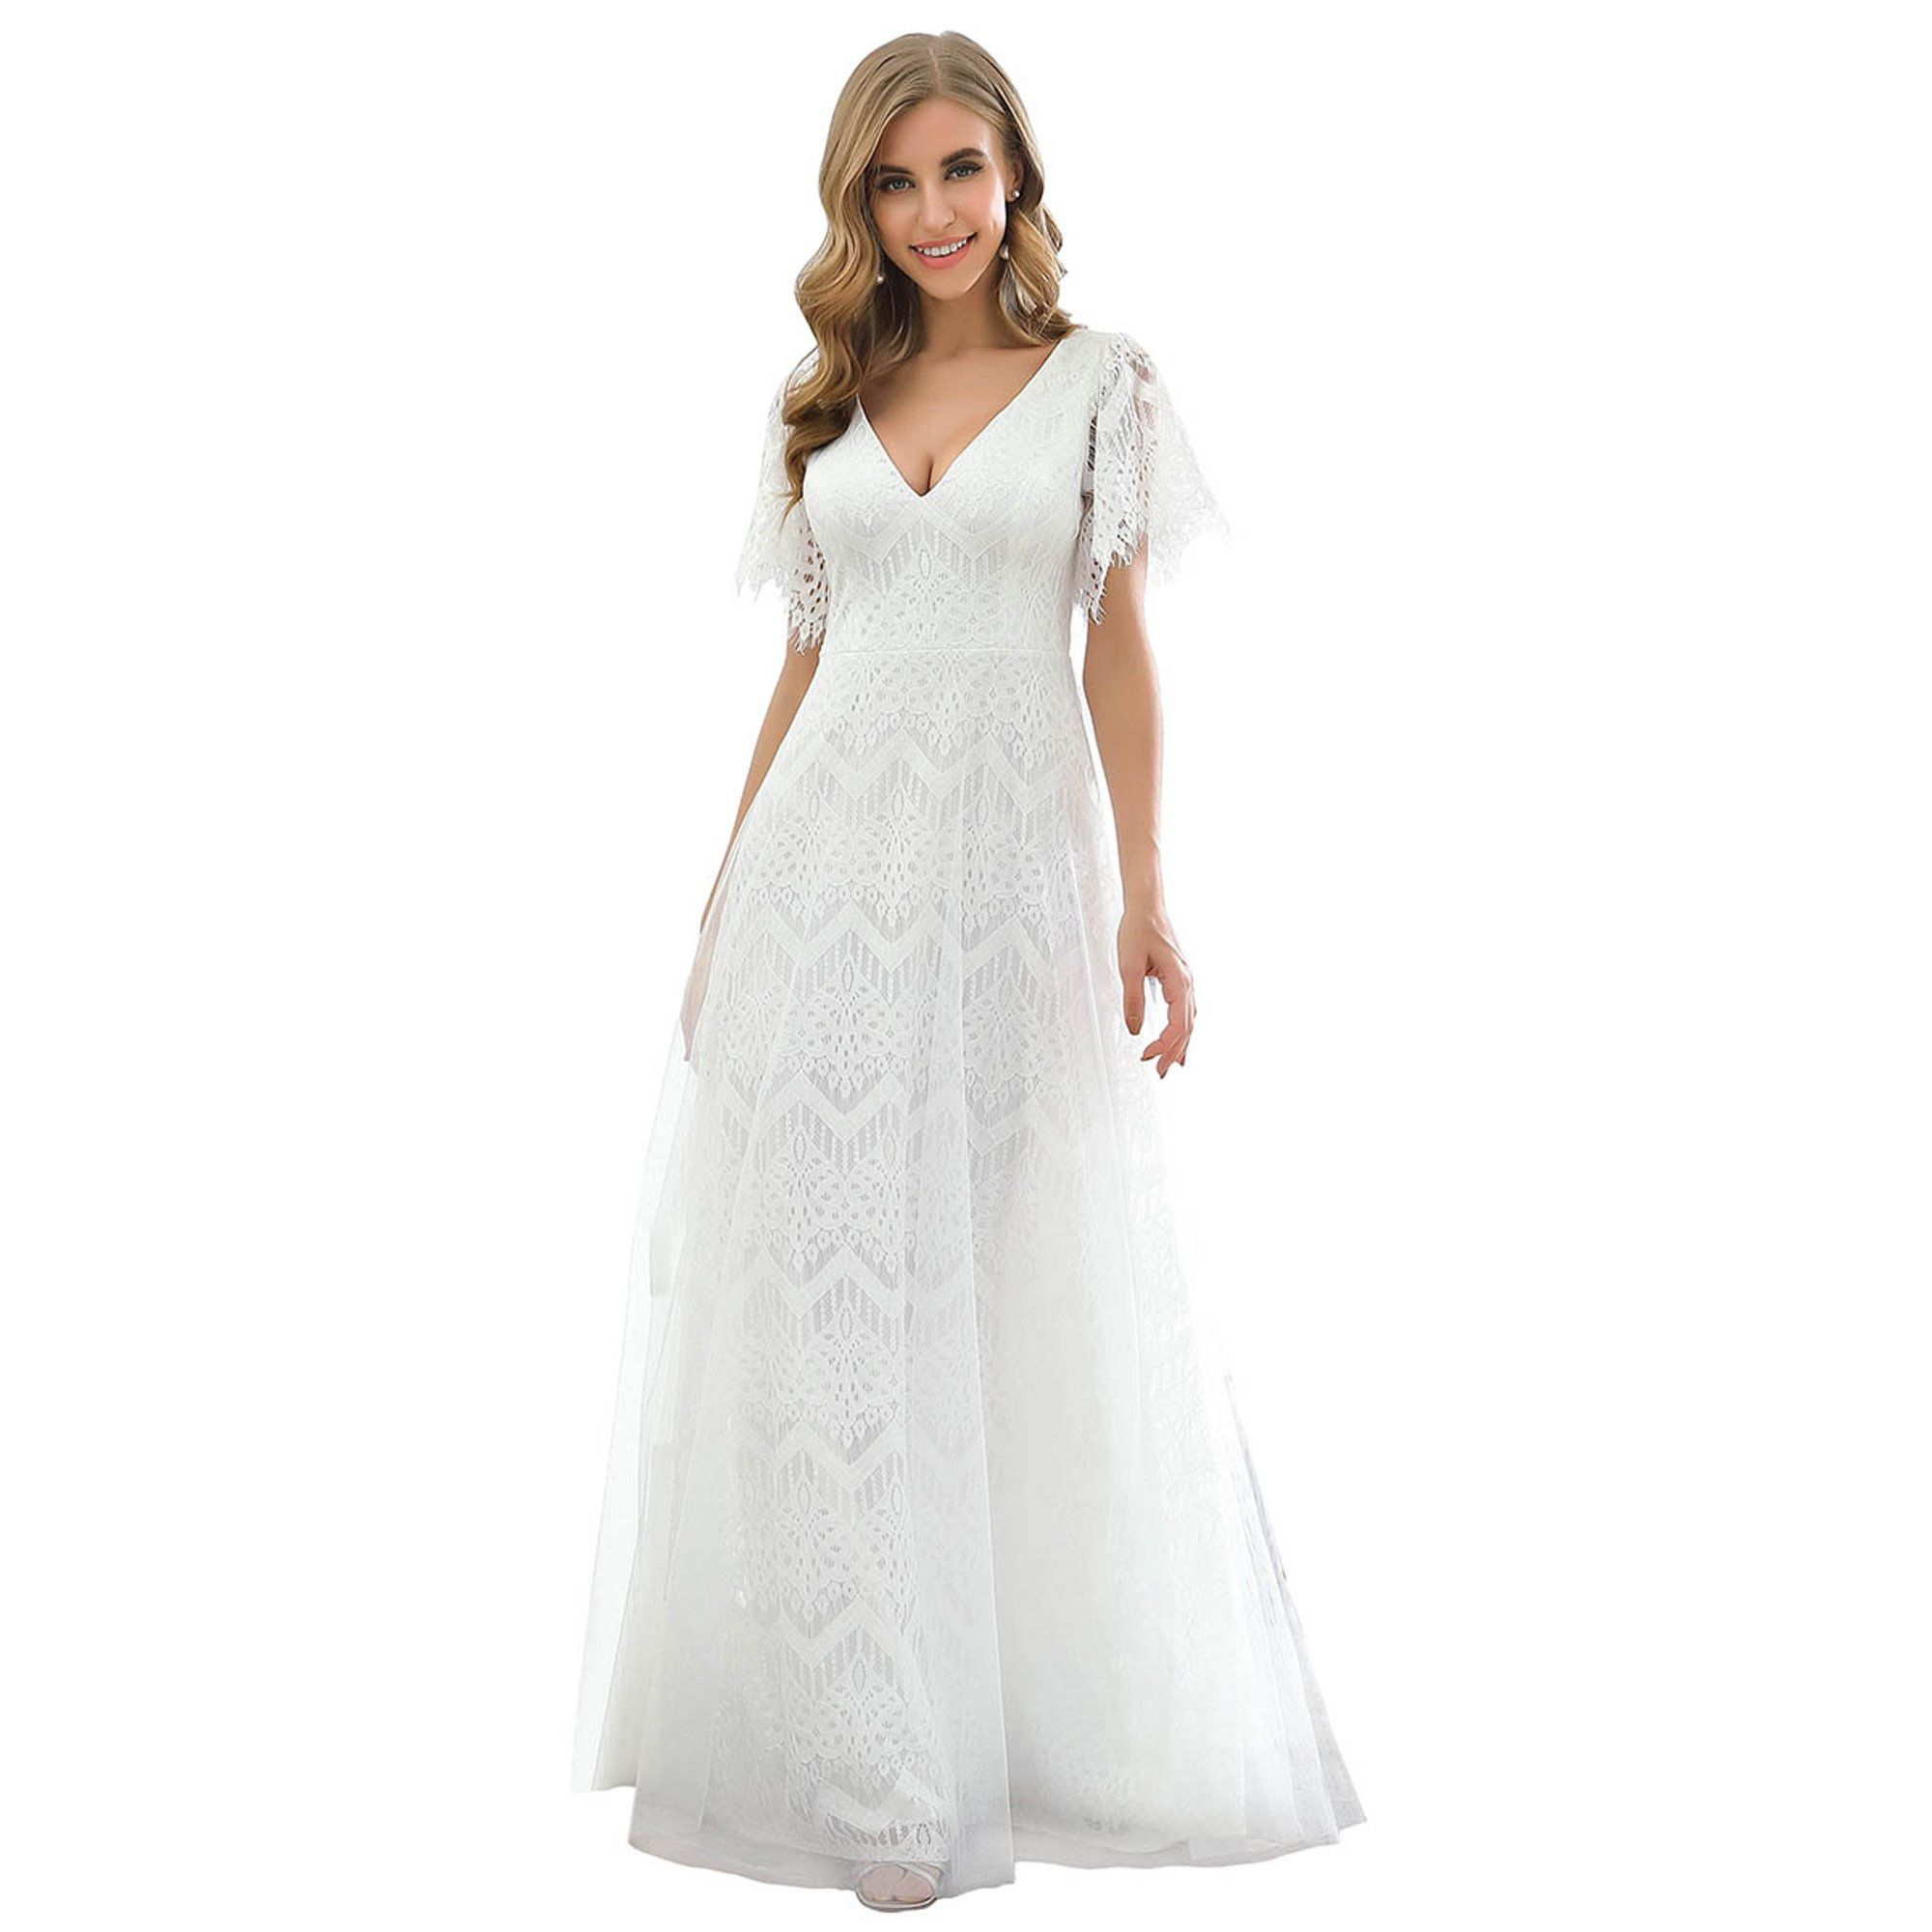 Ever Pretty Ever Pretty Wedding Guest Dress 2020 For Women Lace Long Party Gowns 00547 White Us8 Walmart Long Party Gowns Wedding Guest Dress Guest Dresses [ 2000 x 2000 Pixel ]